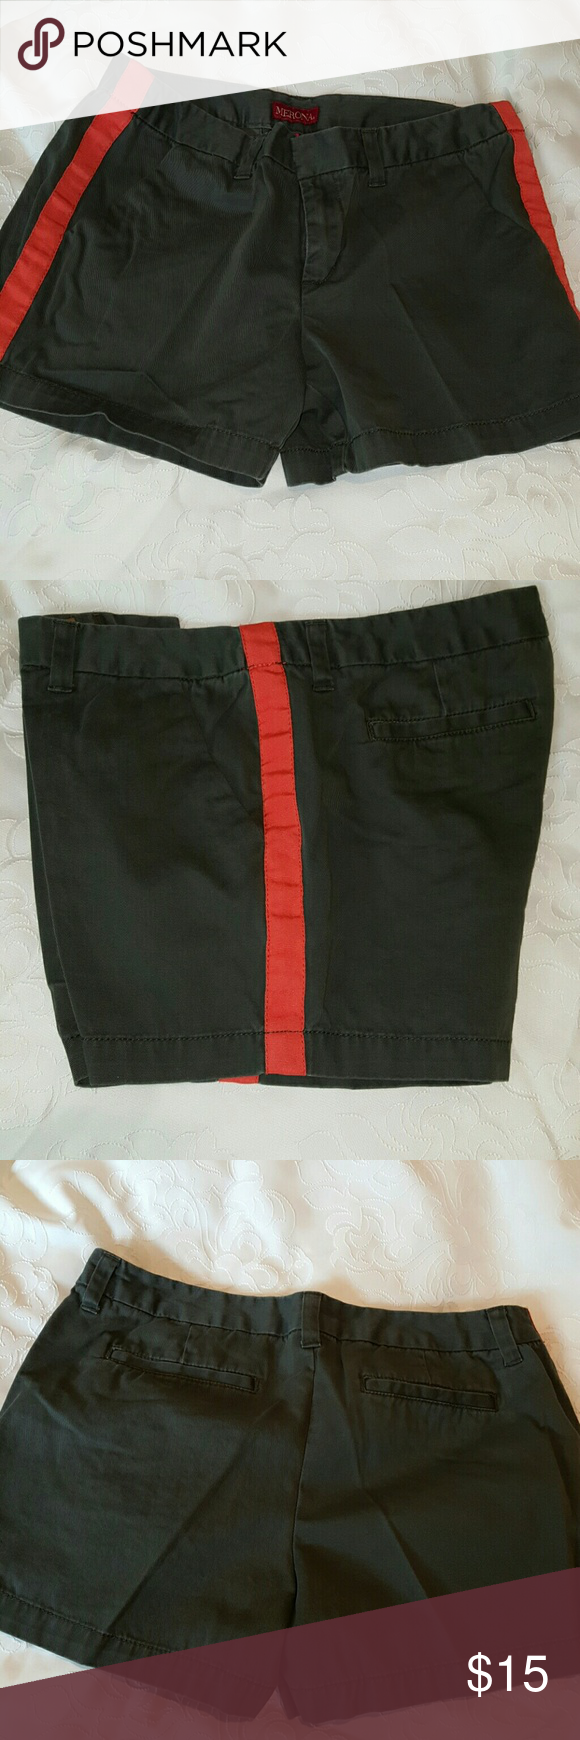 Merona shorts Never worn.   Very unique.  They are khaki and orange. Merona Shorts